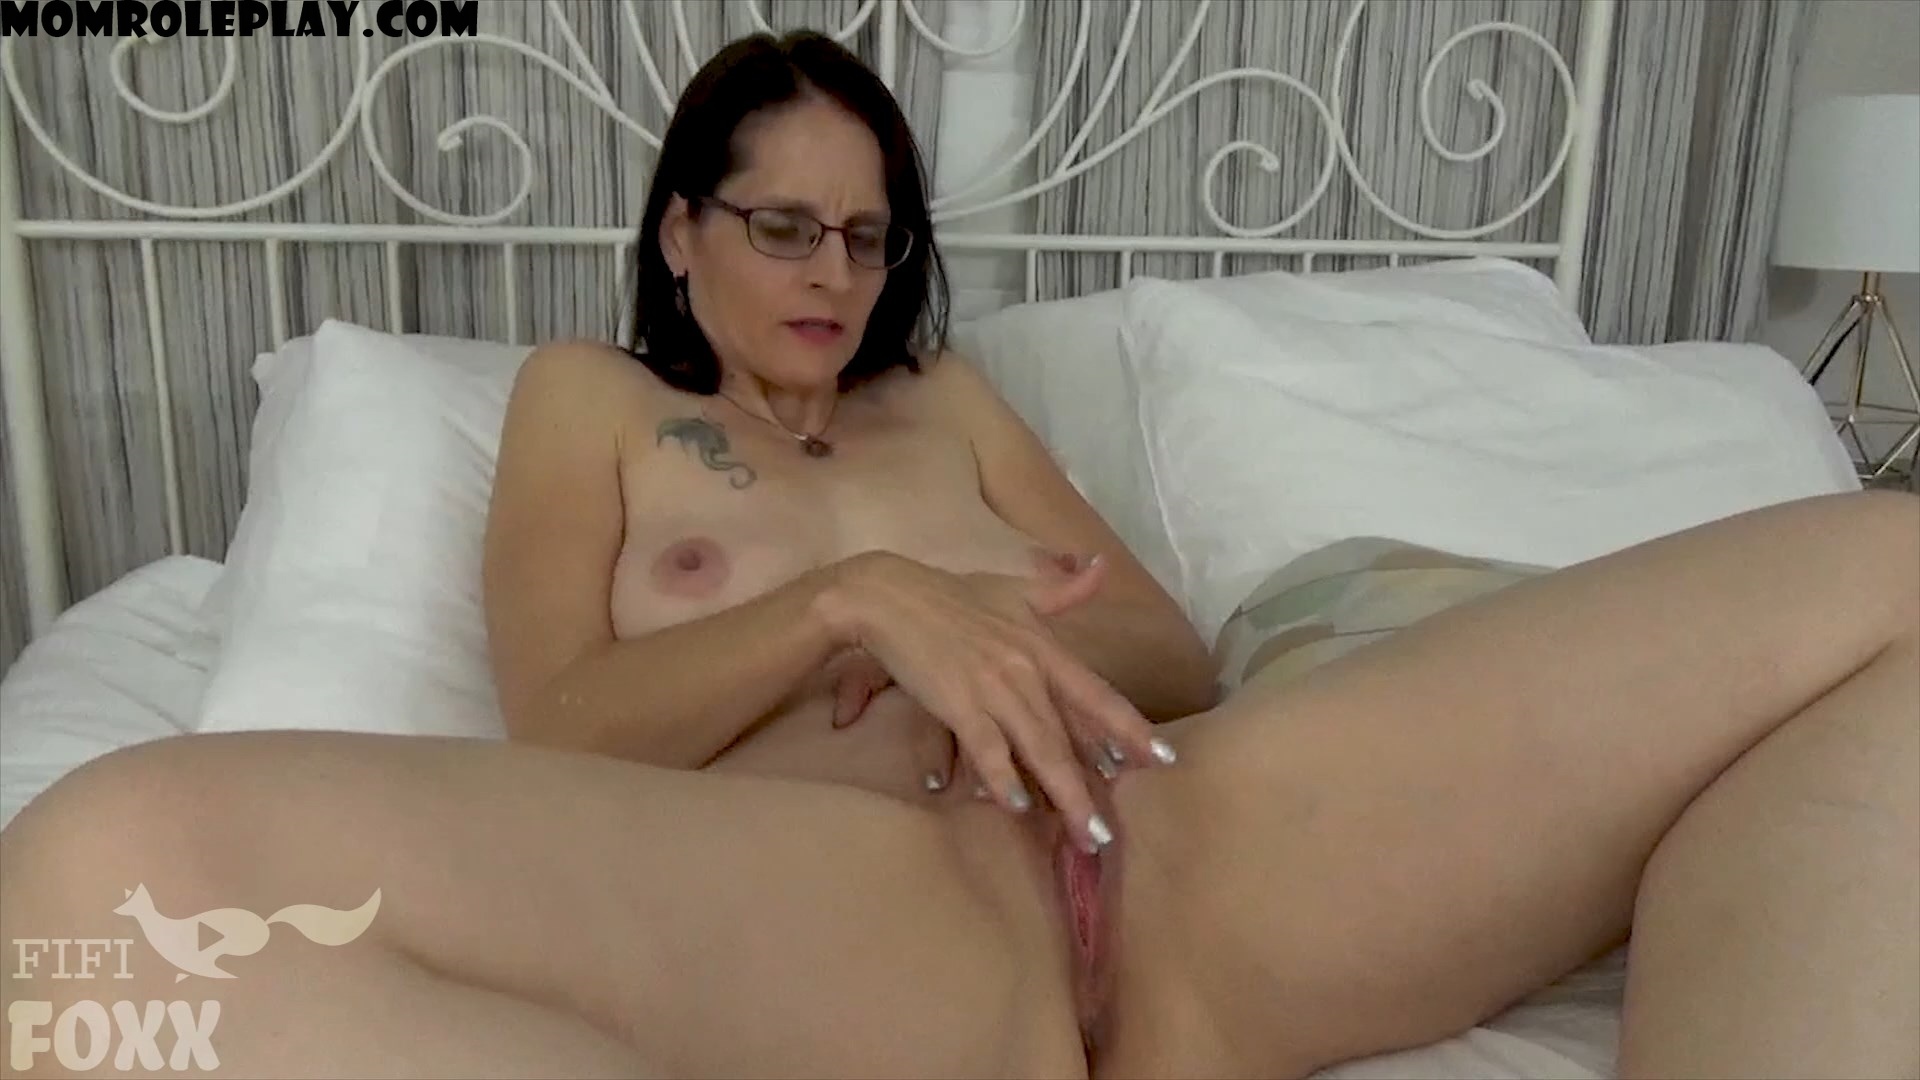 Fifi Foxx Fantasies - That's My Mom! Wait, That's Me?! - Son Discovers He's Inside His Mom's Body - HD 1080p - Christina Sapphire